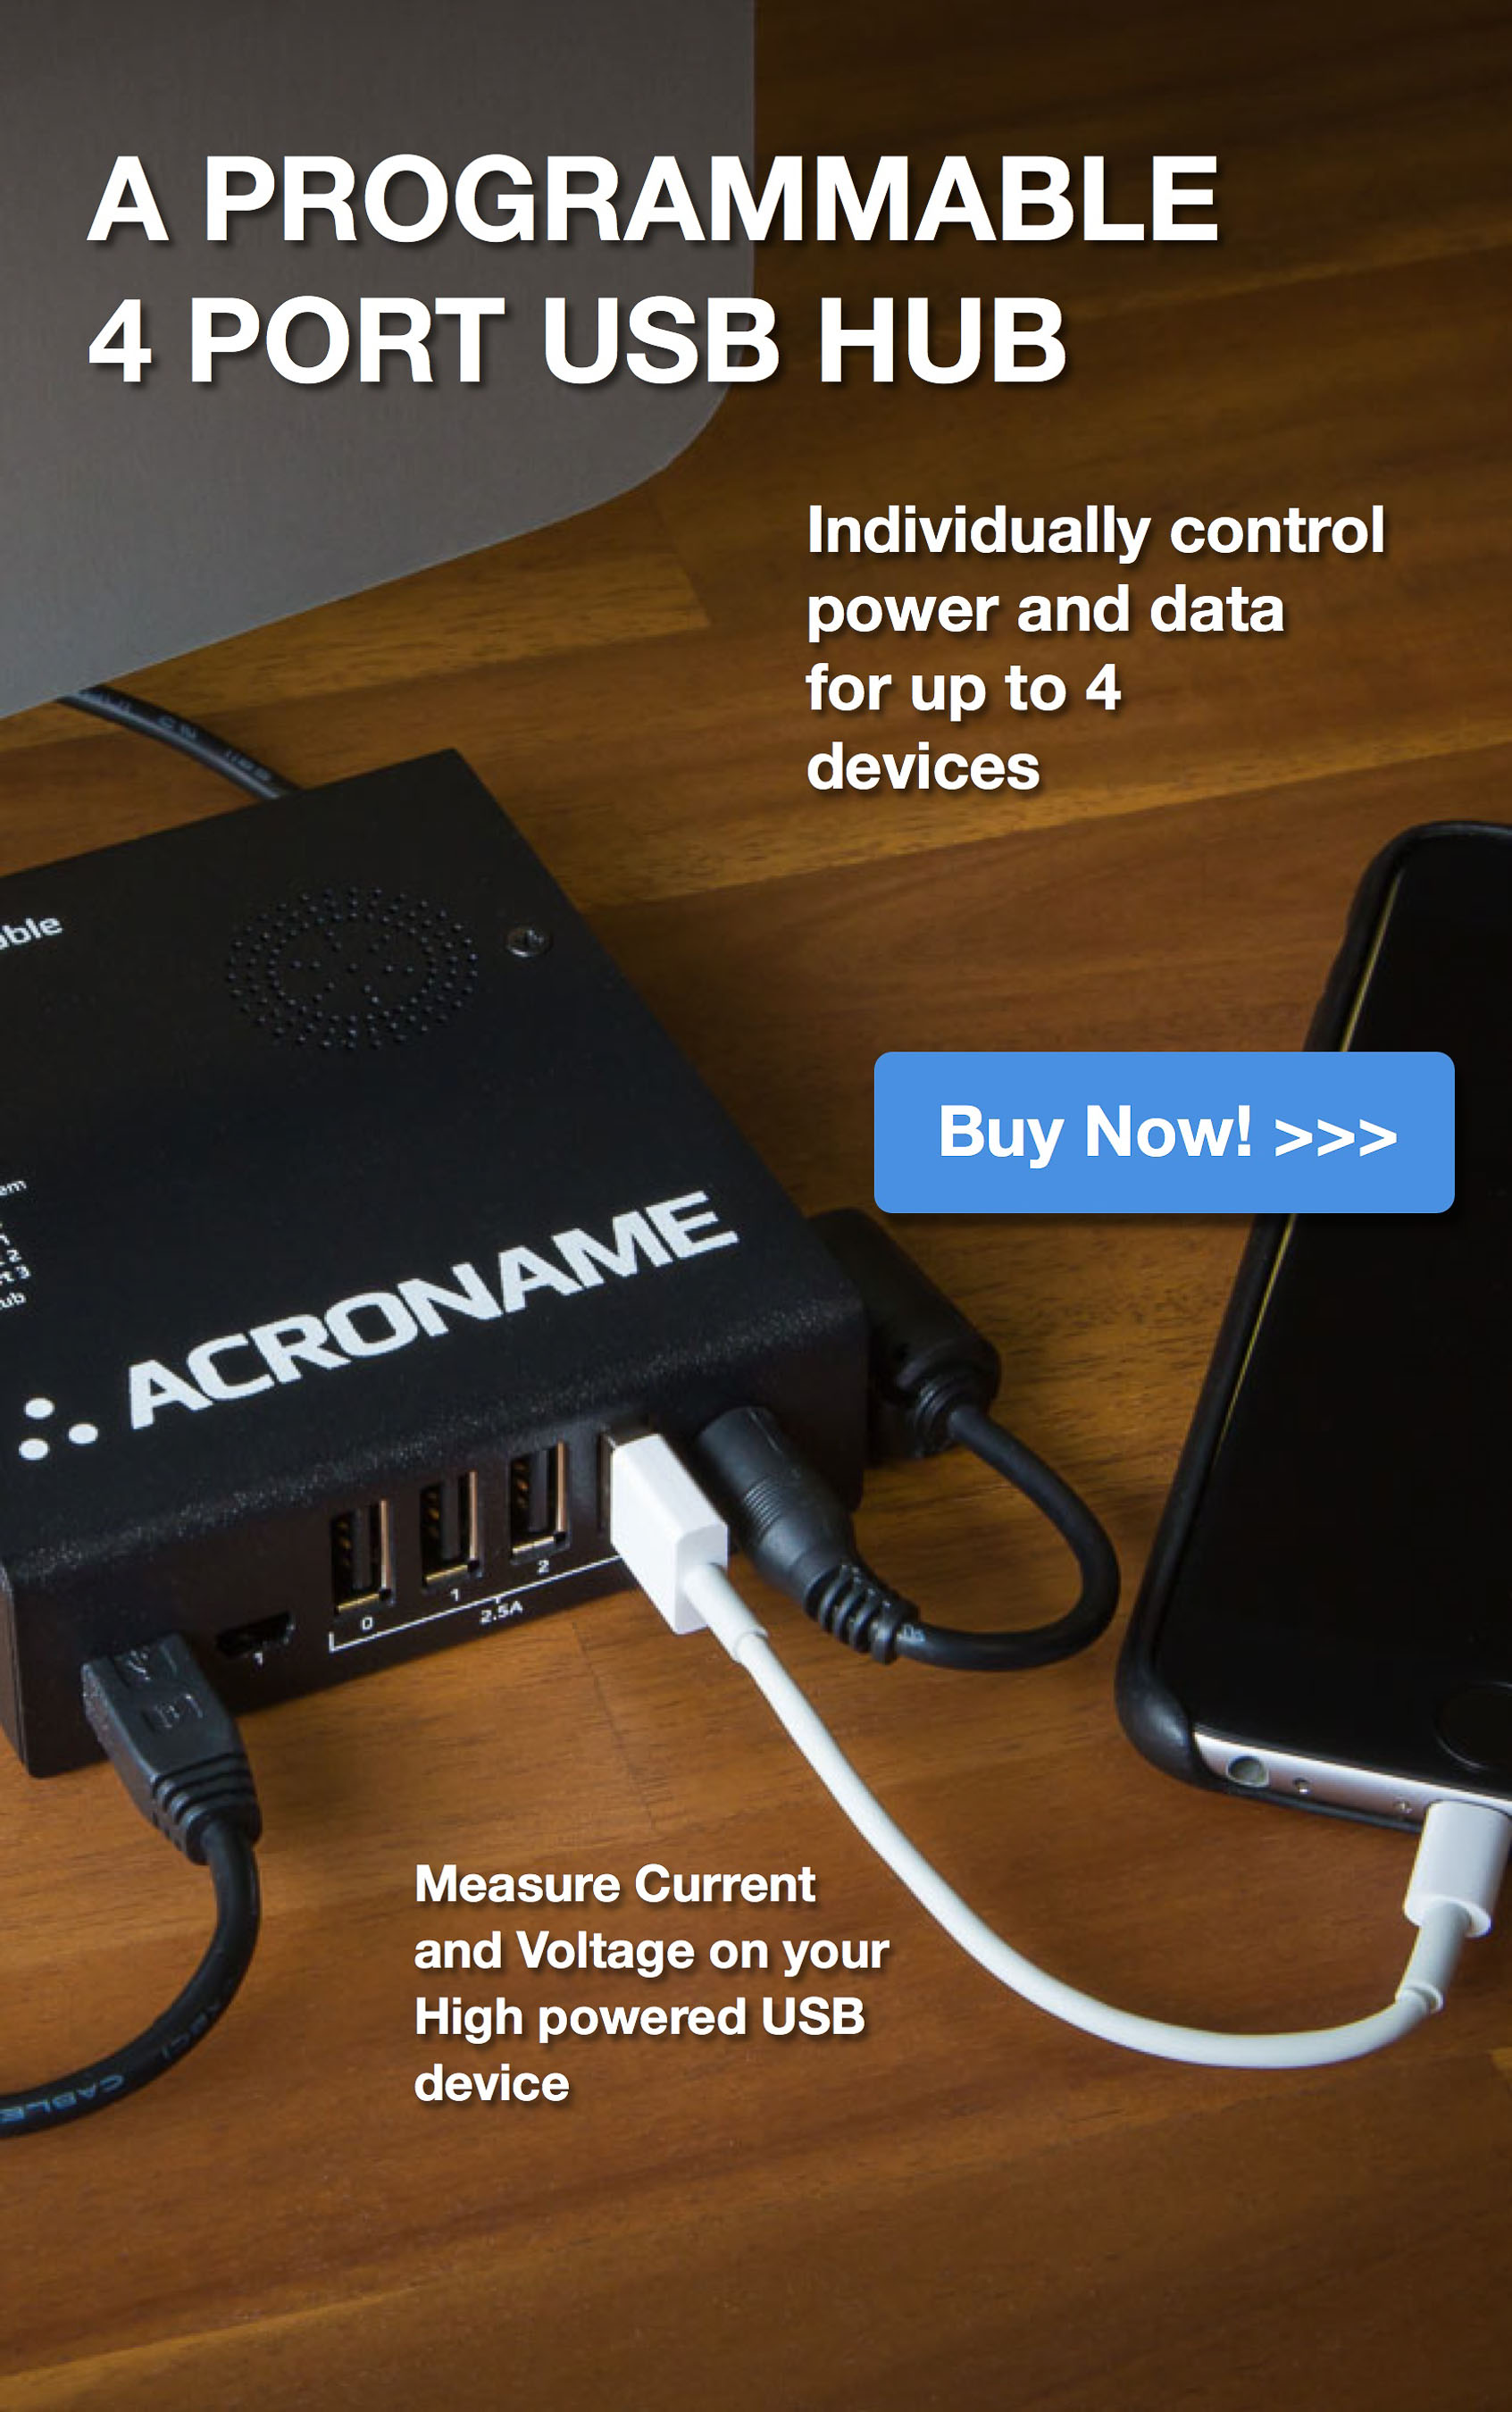 Acroname Programmable 4 port USB Hub